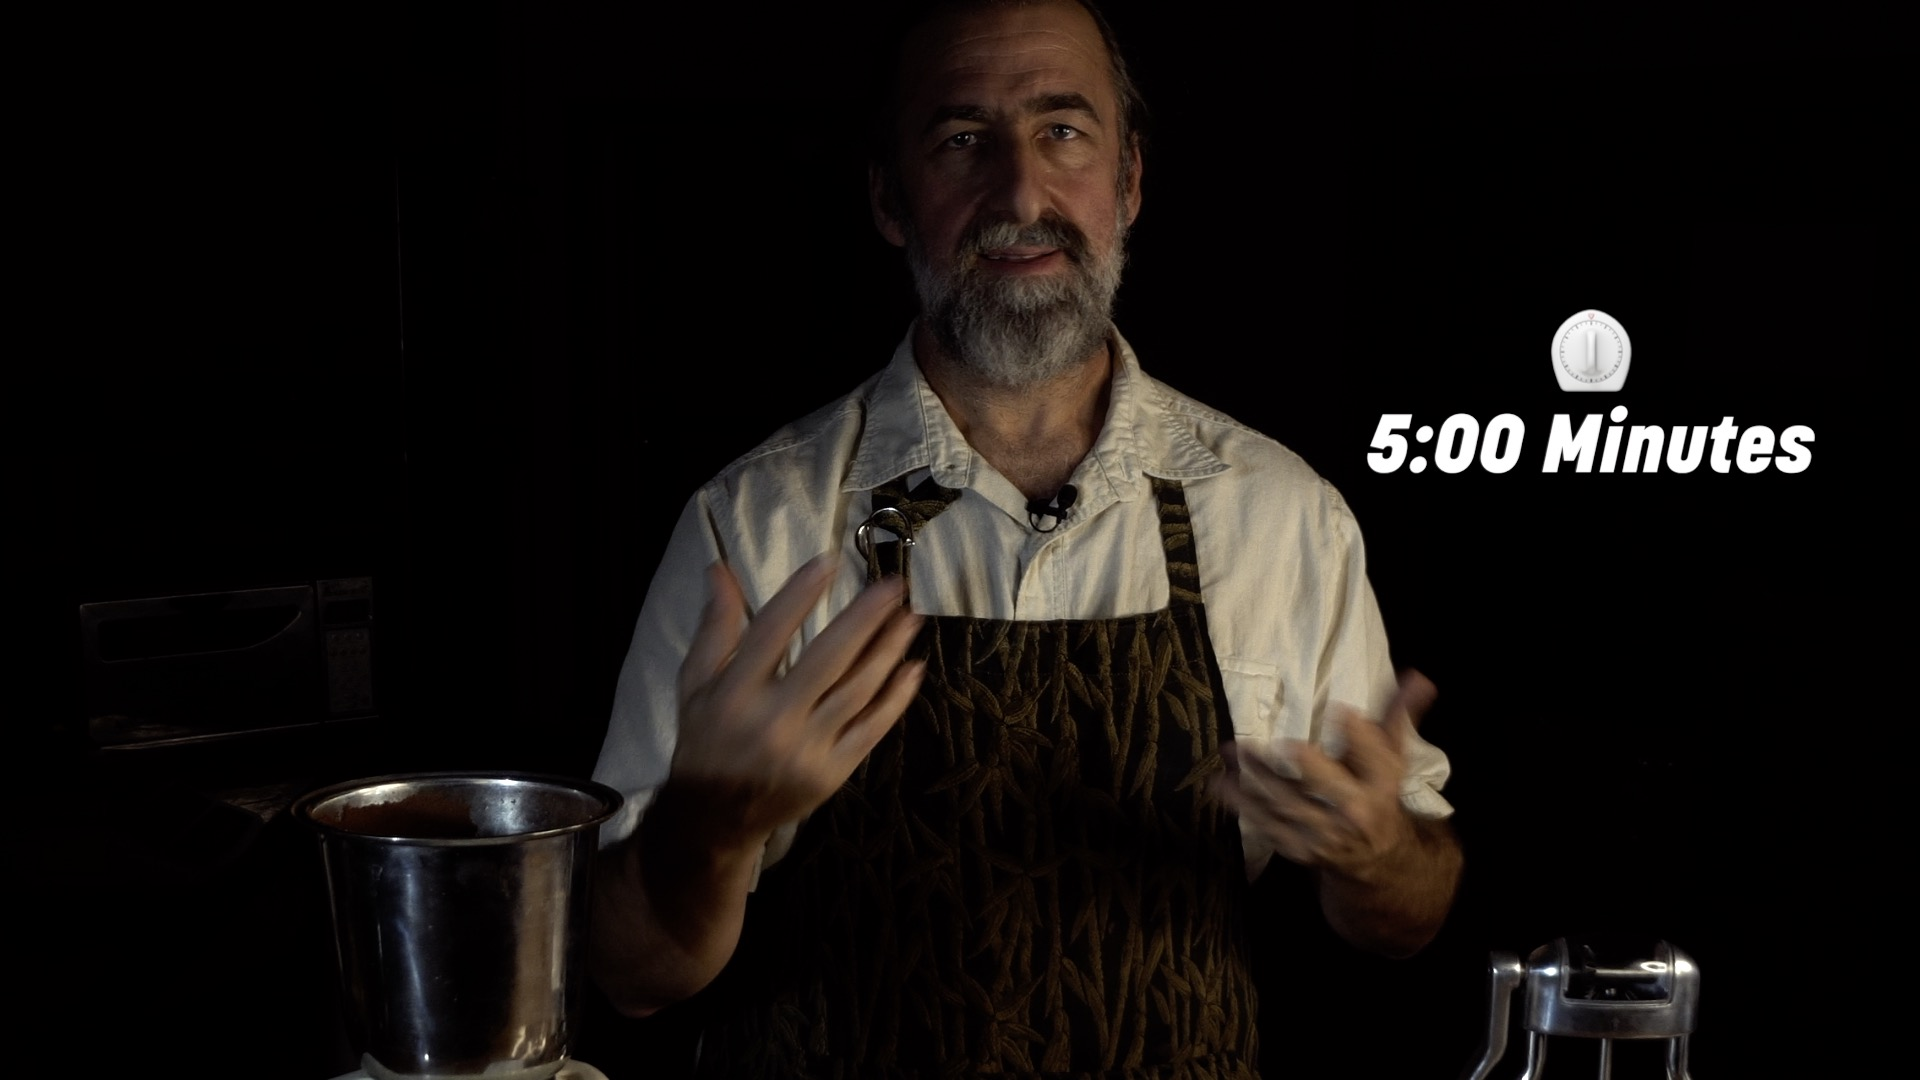 #5 Let it brew 5 minutes - The Alchemist says don't get crazy and go over 5 minutes. It becomes astringent and funky.